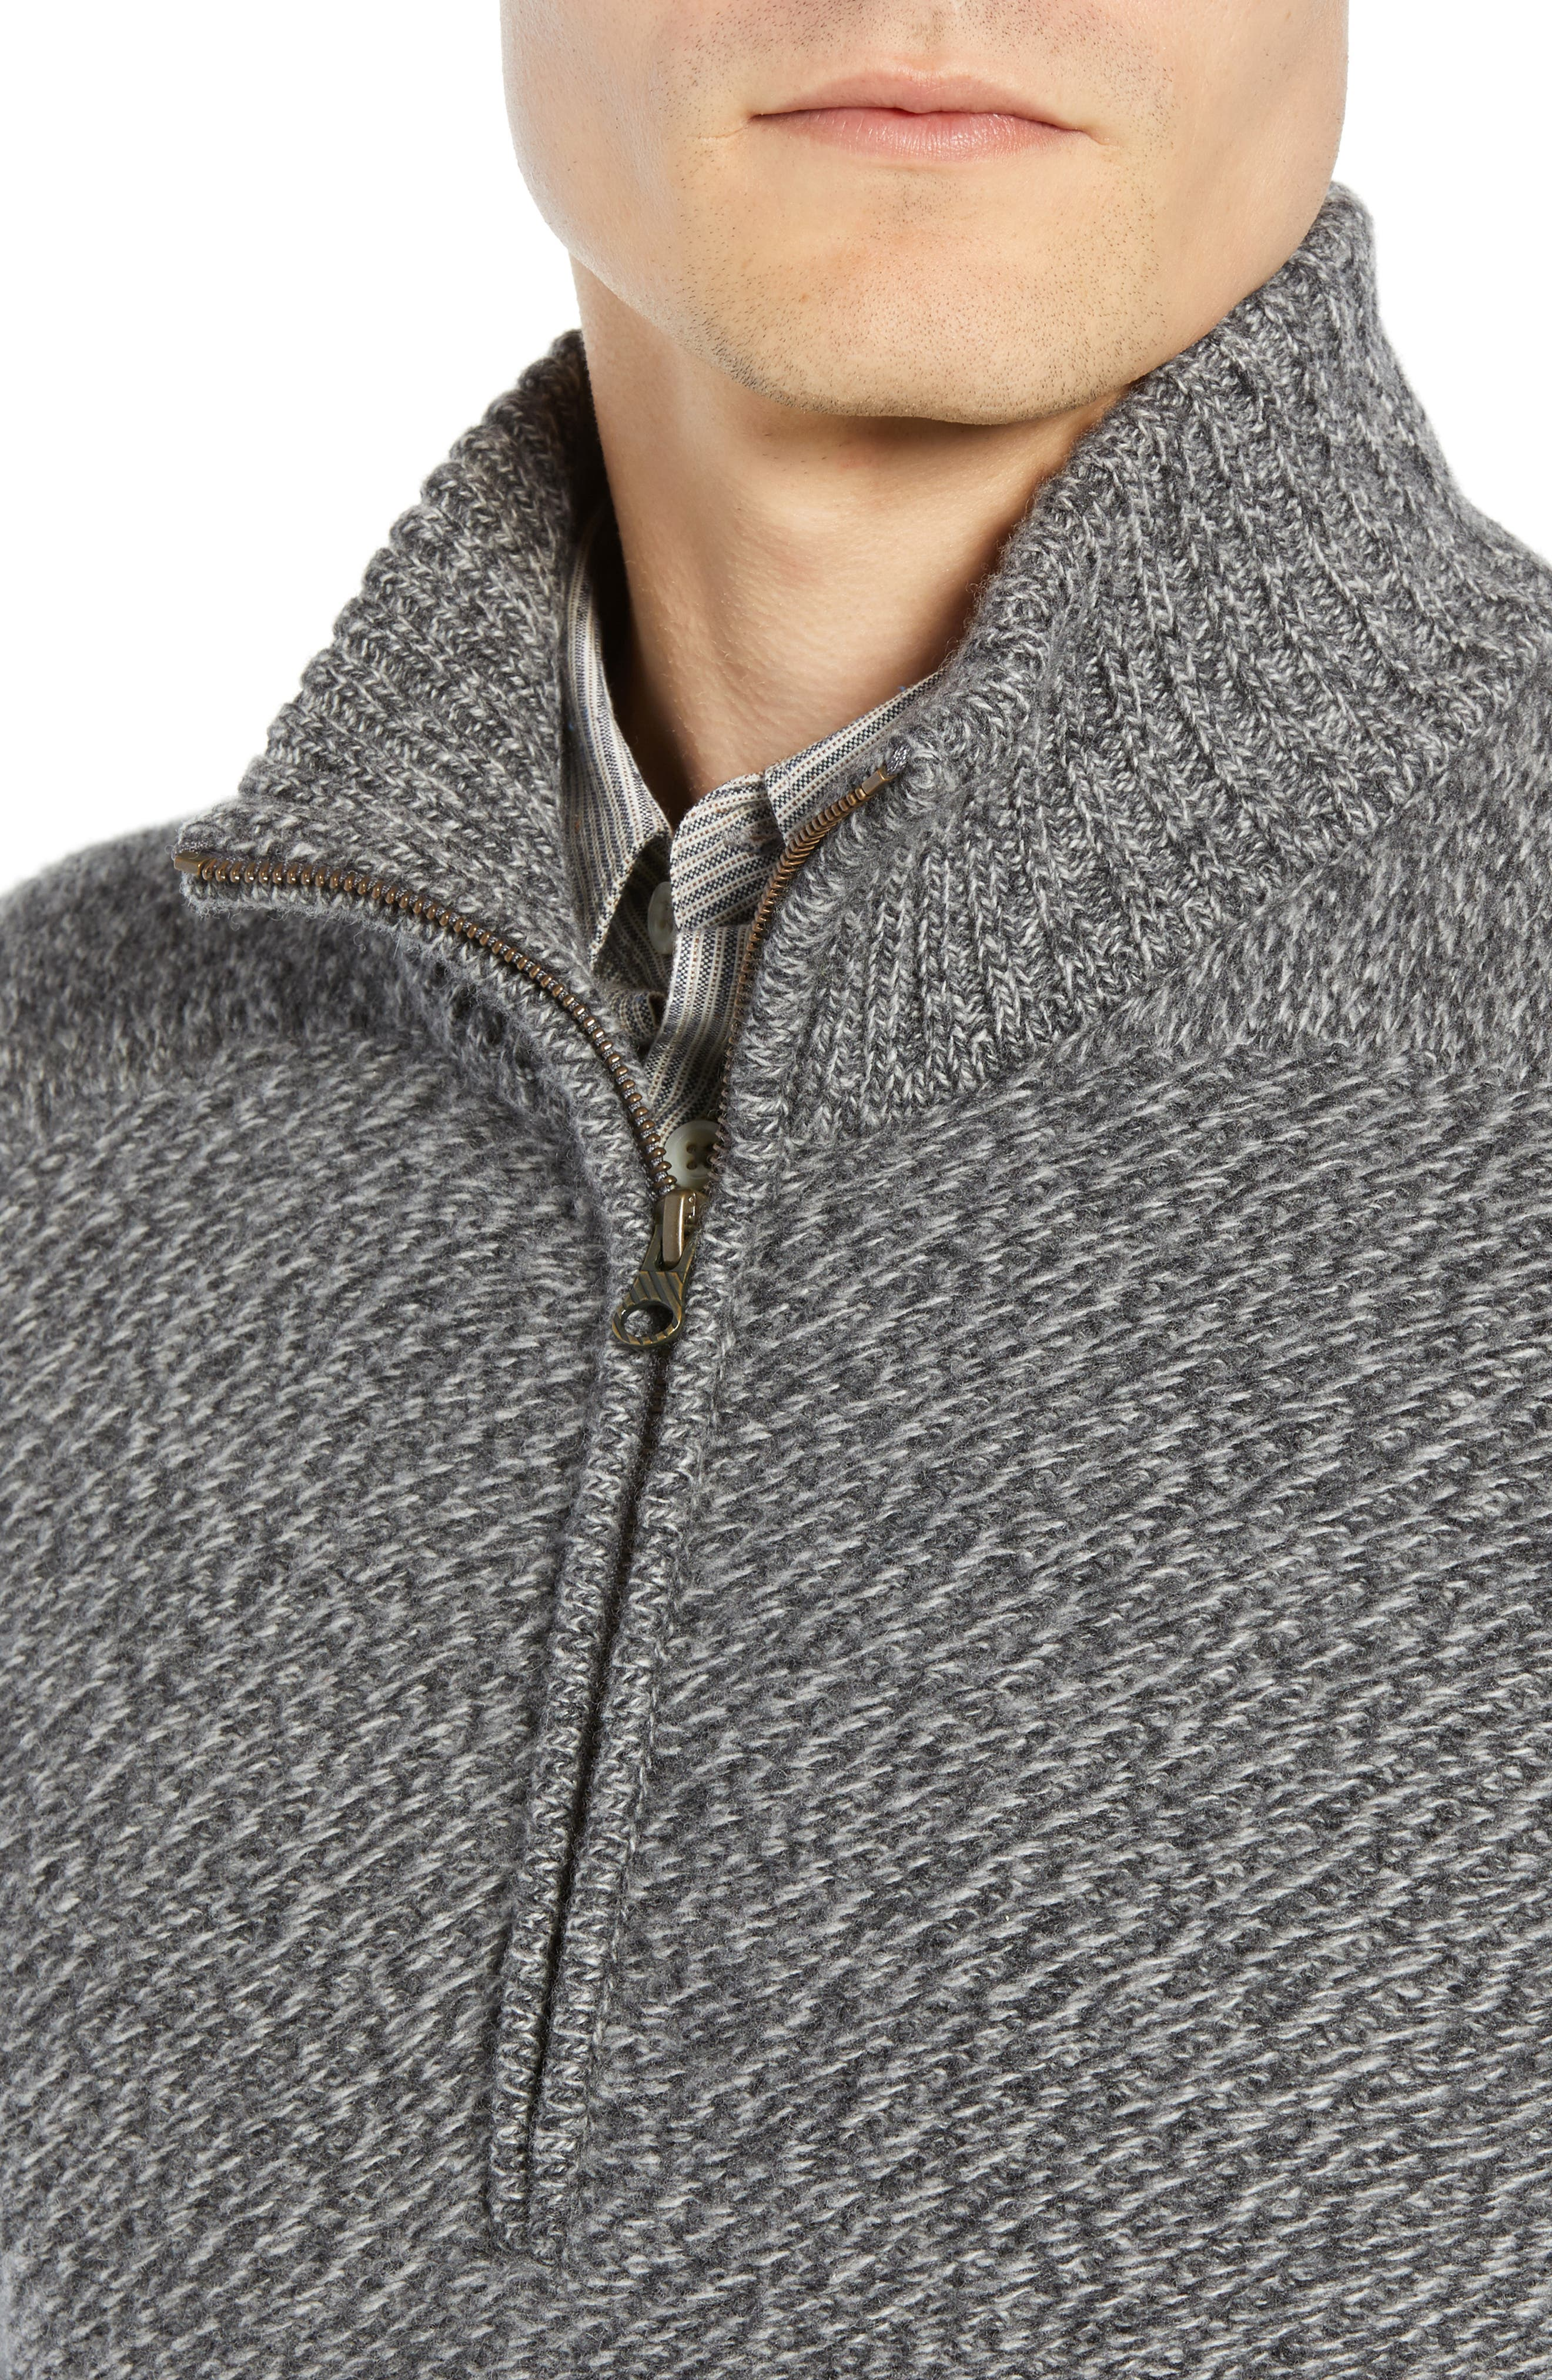 Cashmere Half Zip Sweater,                             Alternate thumbnail 4, color,                             CHARCOAL